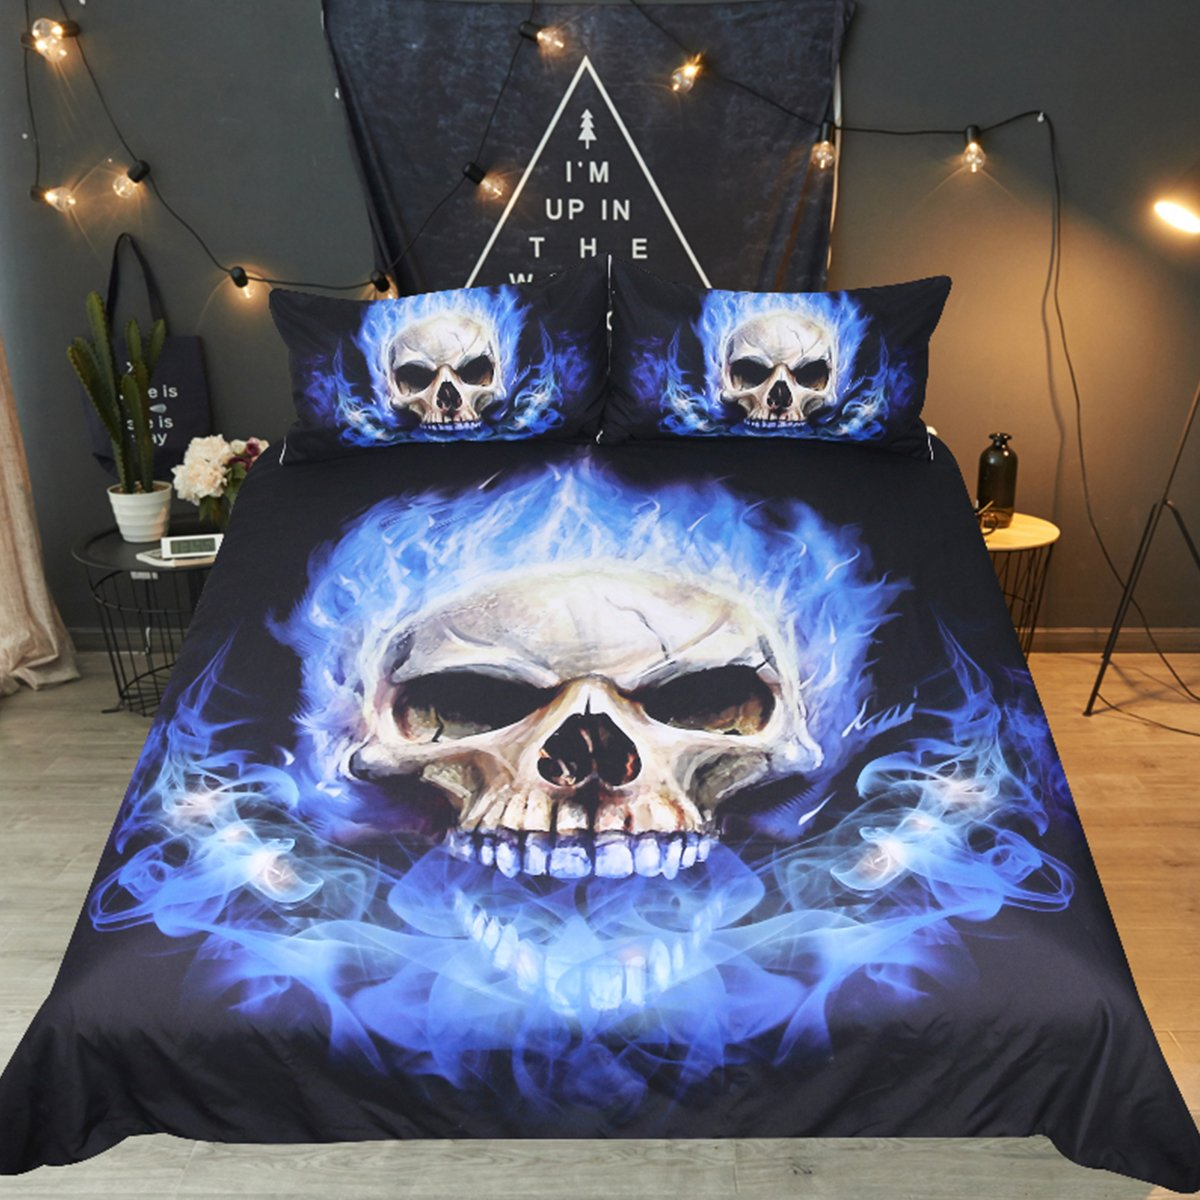 Sleepwsih Blue Skull Fire Duvet Cover Set 3 Pieces Skeleton Bedding Tribal Bedding Set Boys Black and Blue Ghost Bed Set (Twin)